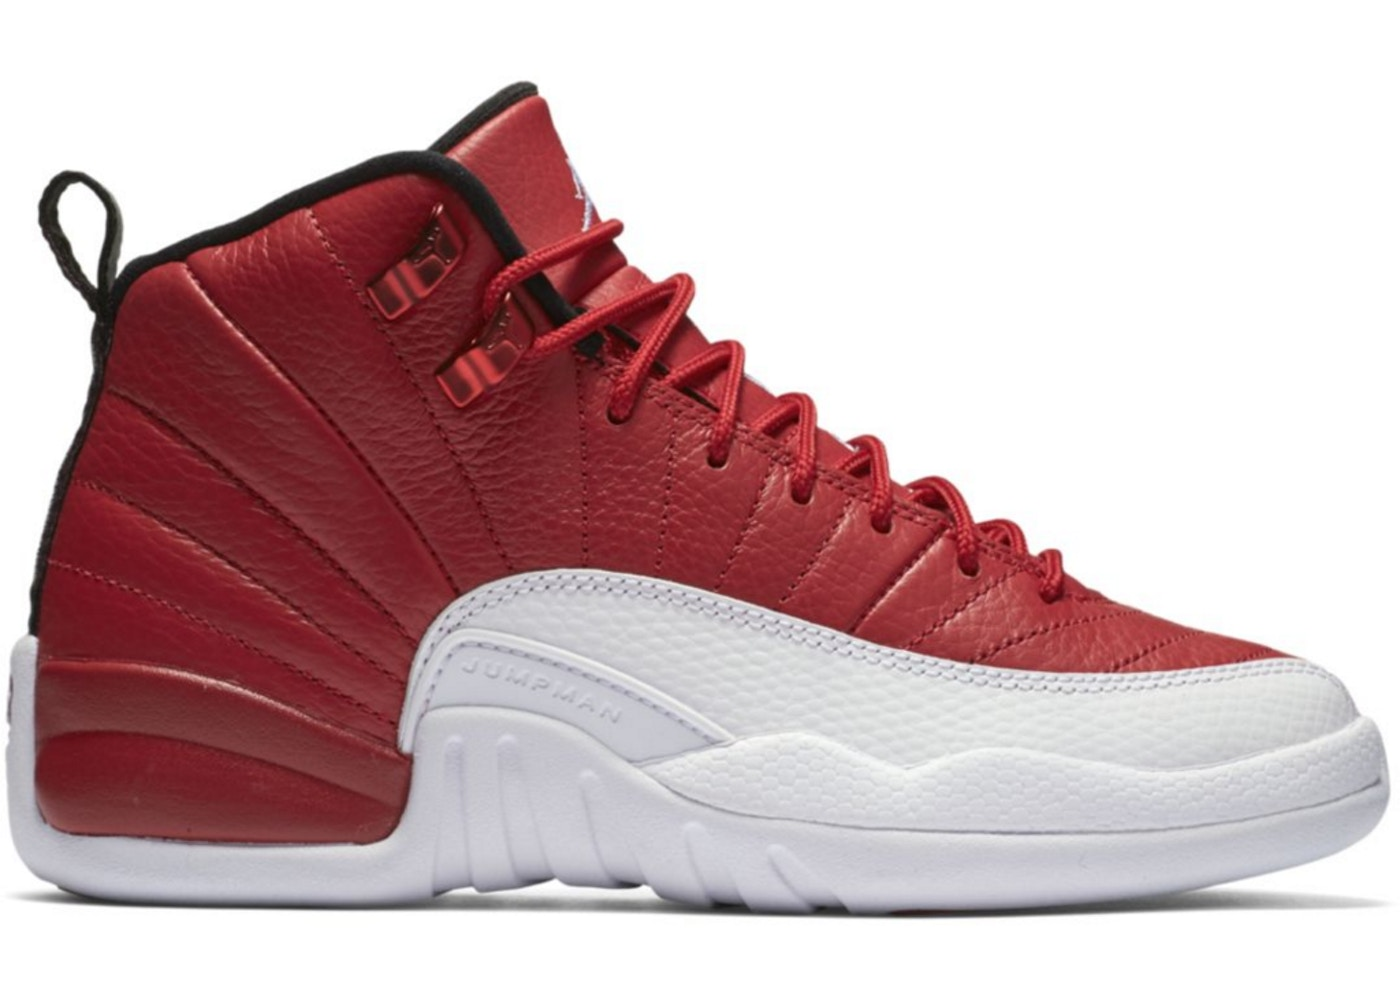 Jordan 12 Retro Gym Red (GS) - 153265-600 6275bacdb